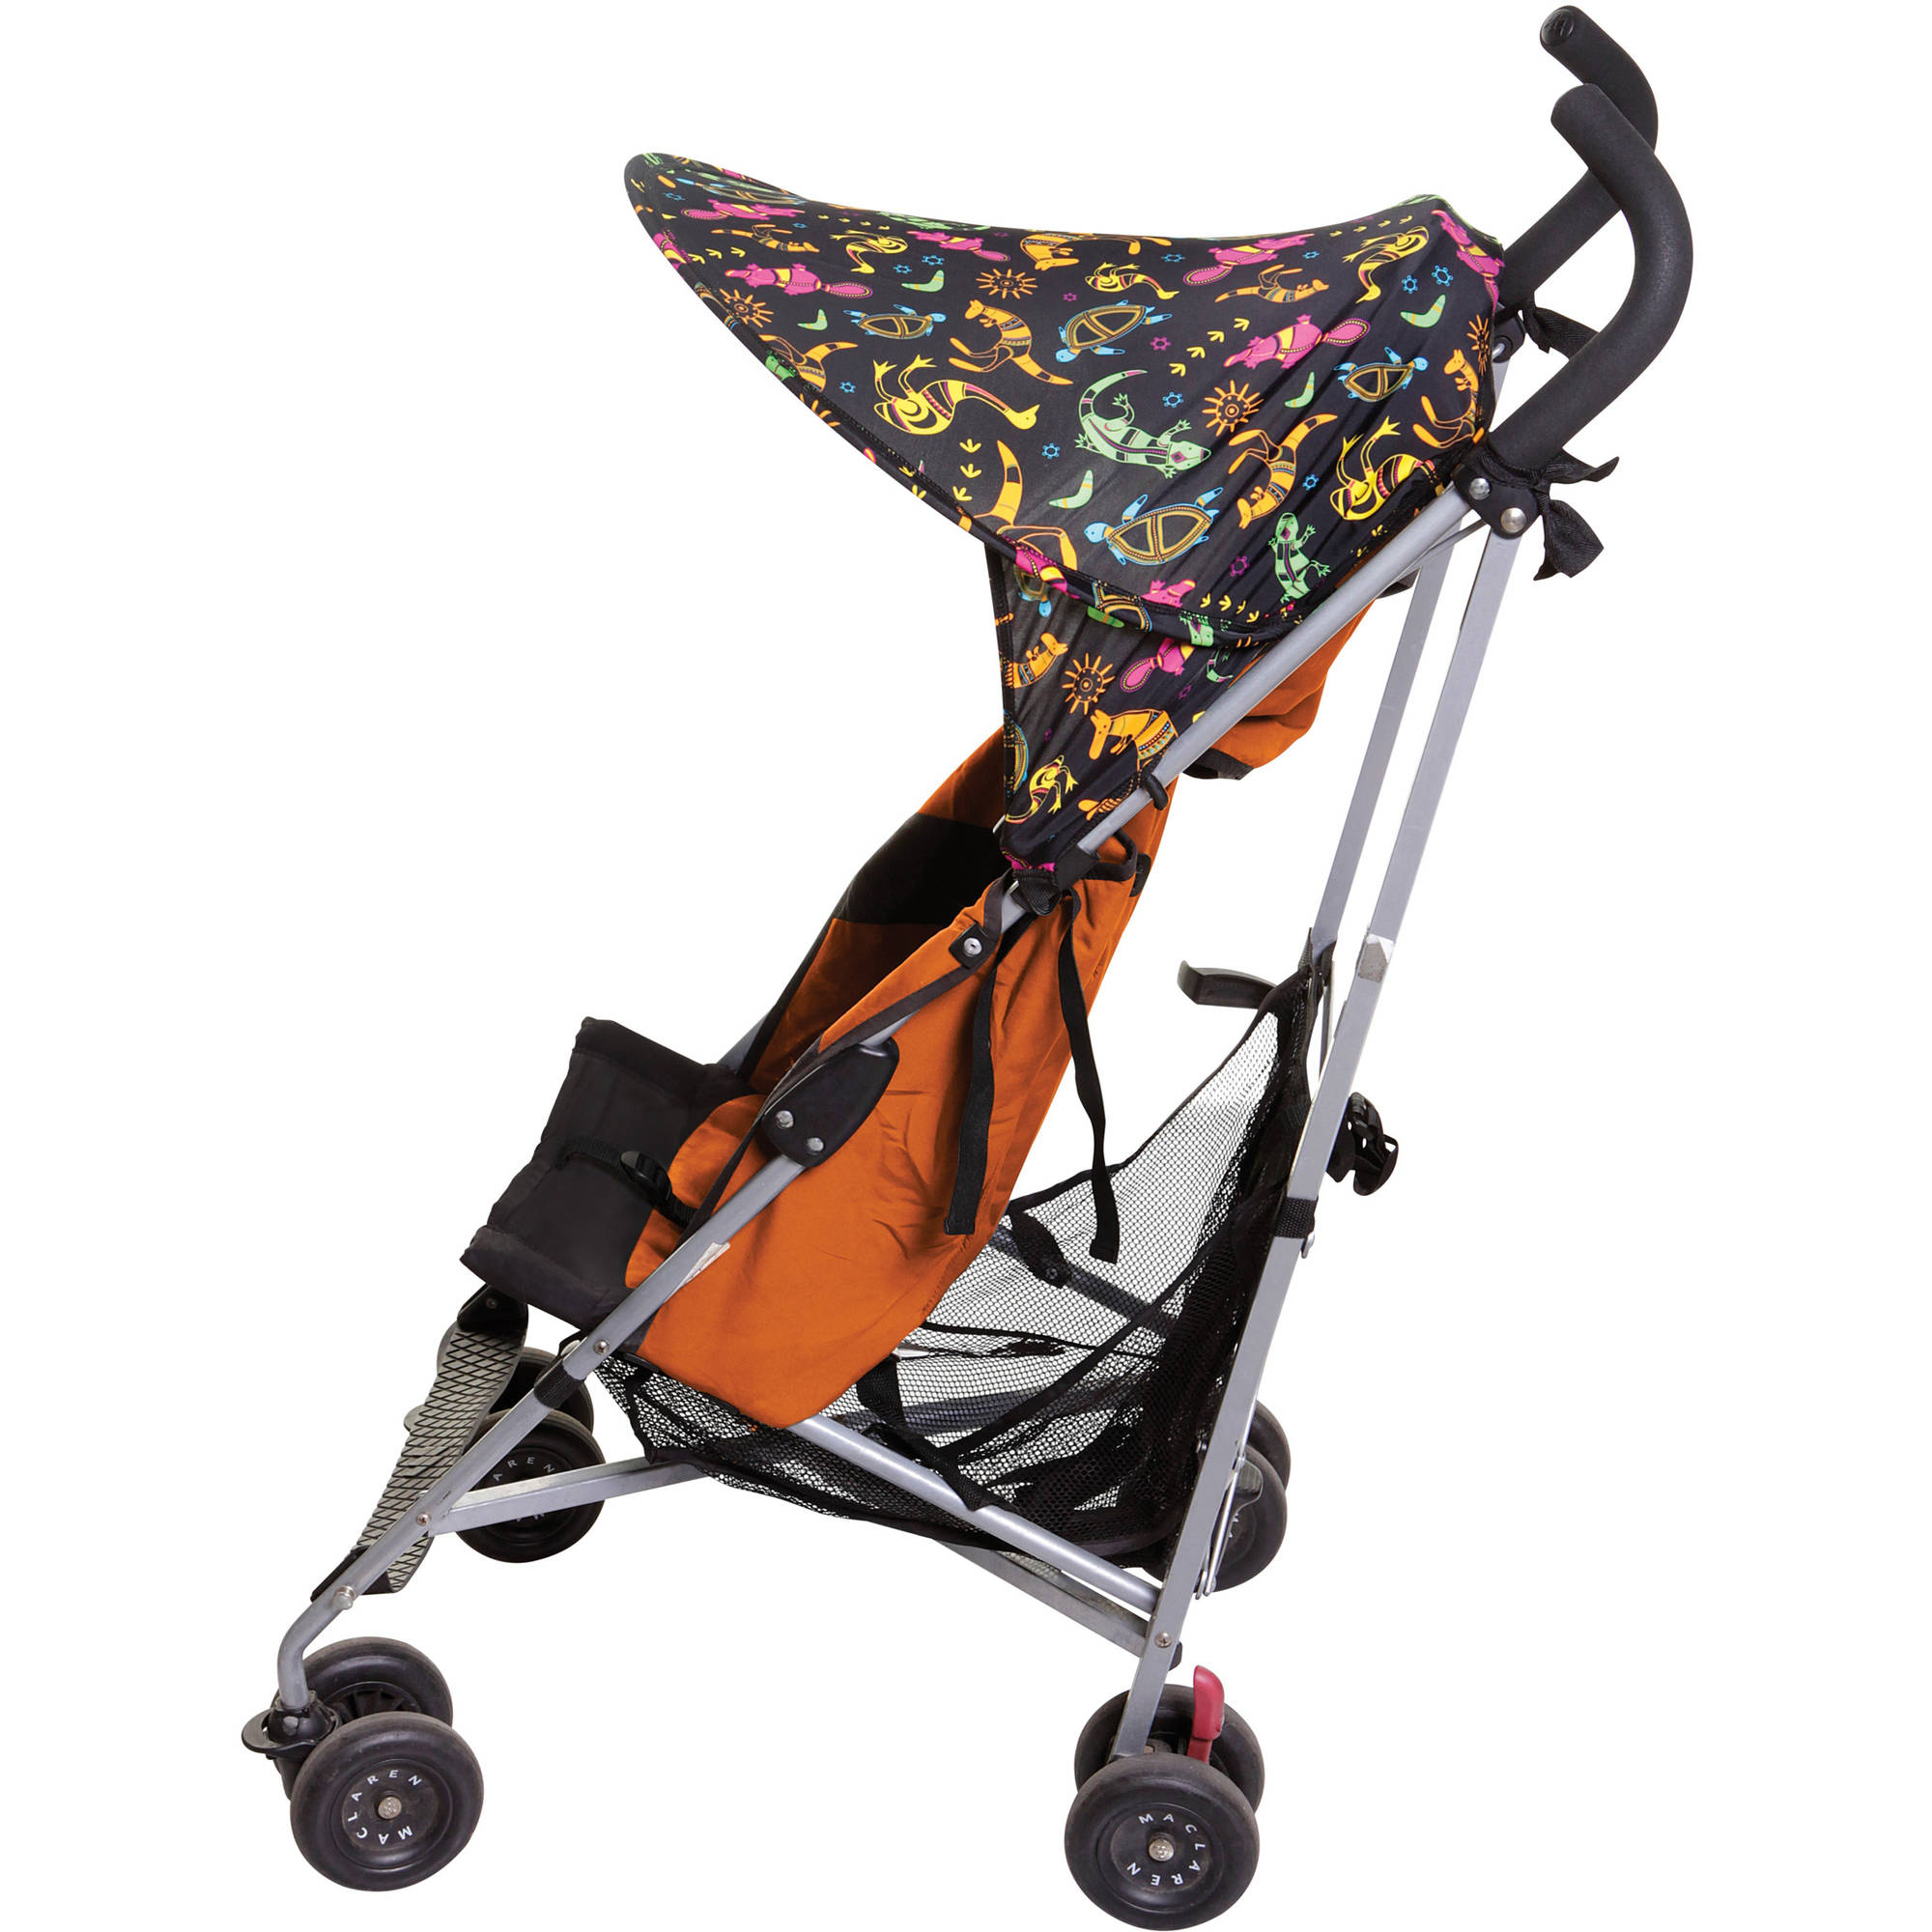 Dreambaby Strollerbuddy Extenda-Shade, Animal Print